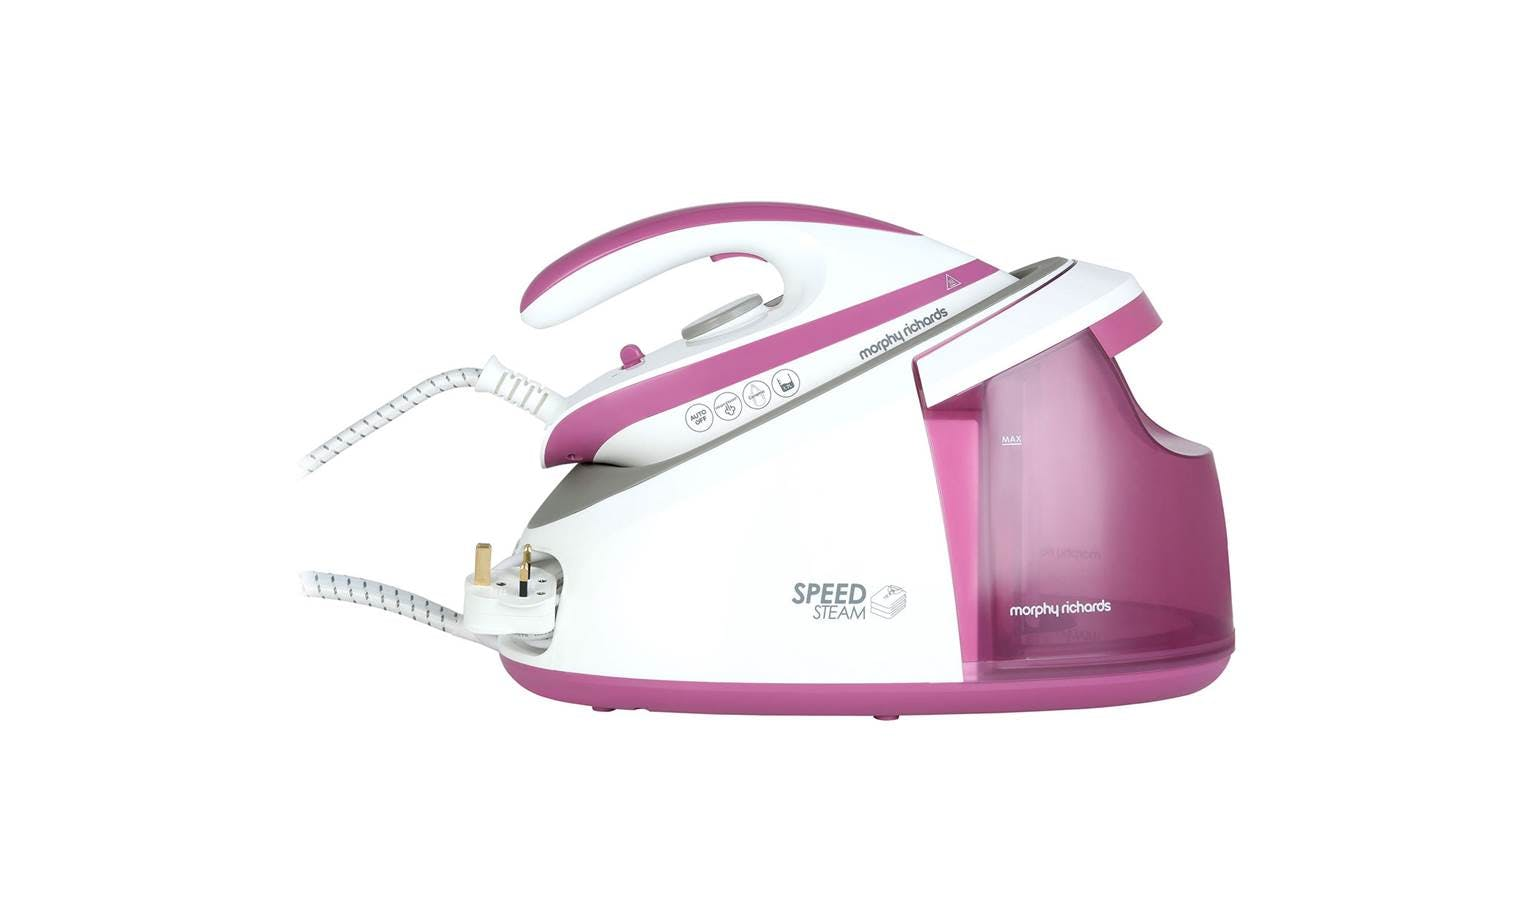 Morphy Richards 33201 Speed Steam Generator Iron Ironing Board Harvey Norman Malaysia Get the best deals on morphy richards irons & press irons. morphy richards 33201 speed steam generator iron ironing board